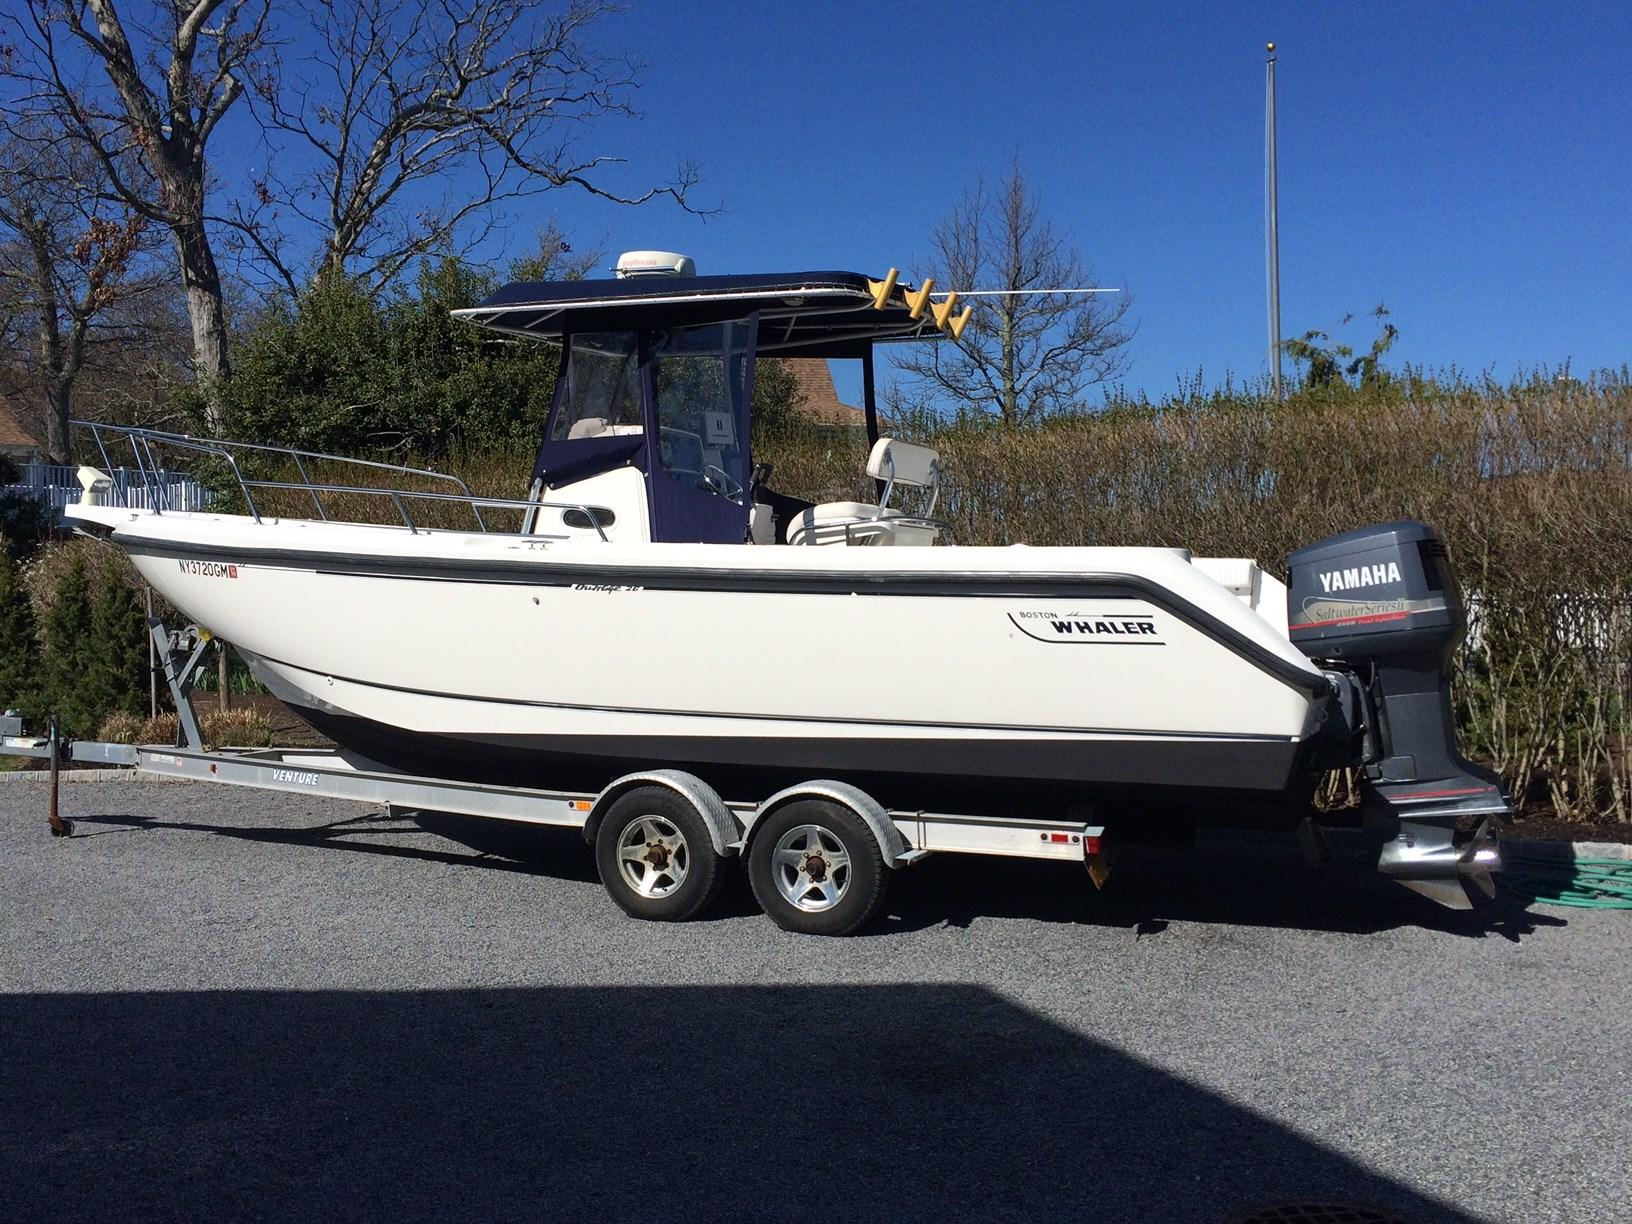 1999 boston whaler 26 outrage, south jamesport new york boats com Boston Whaler 27